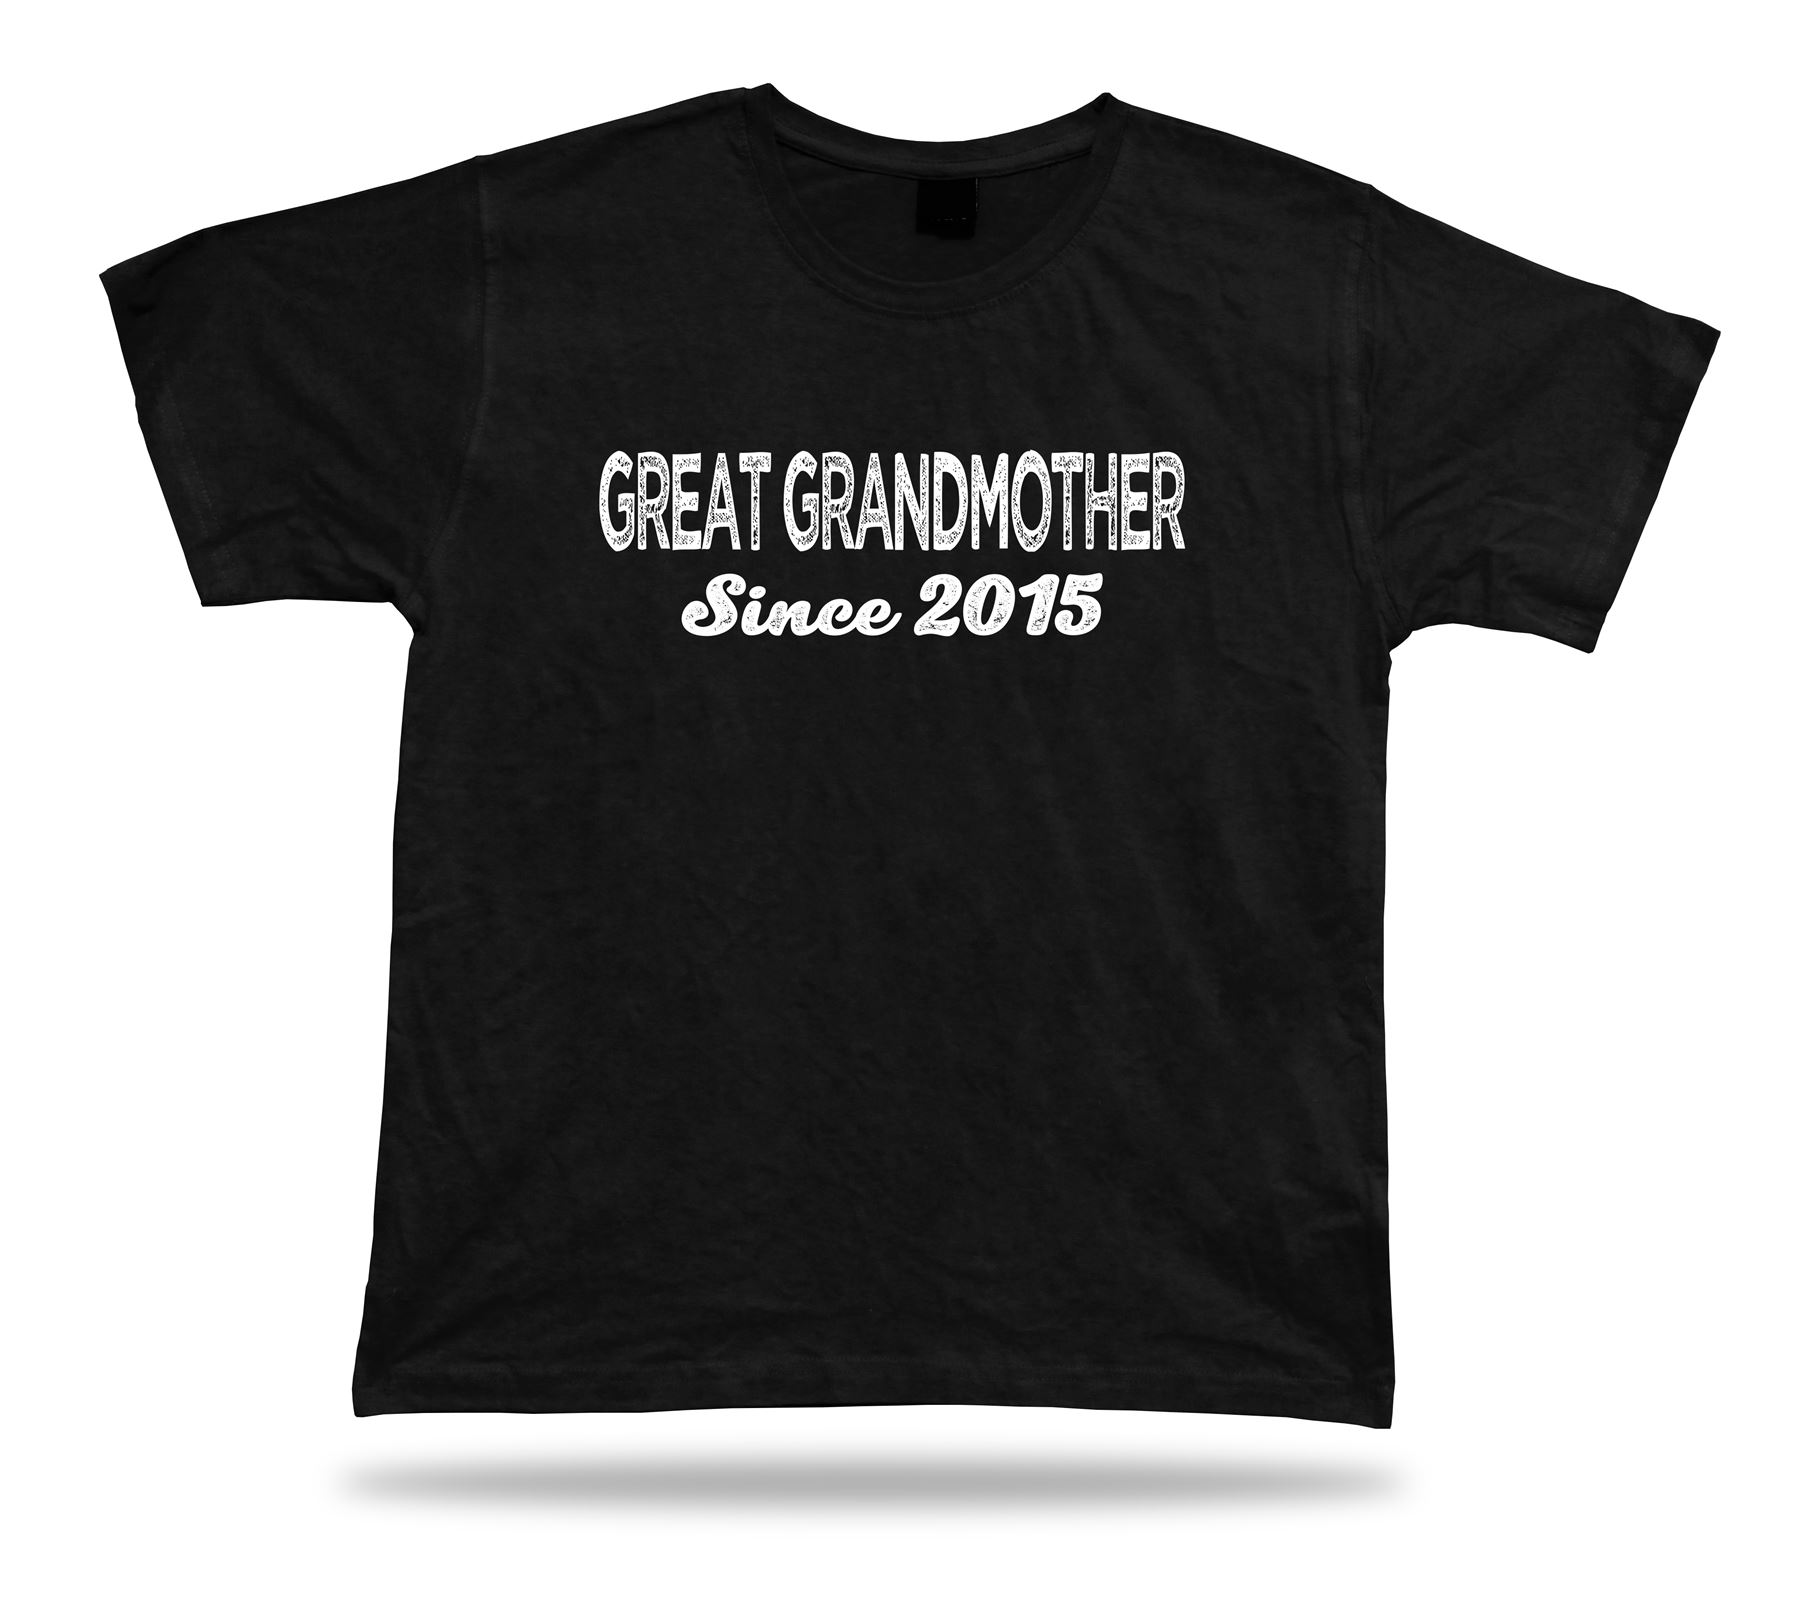 Great Grandmother Since 2015 Awesome Best T Shirt Gift